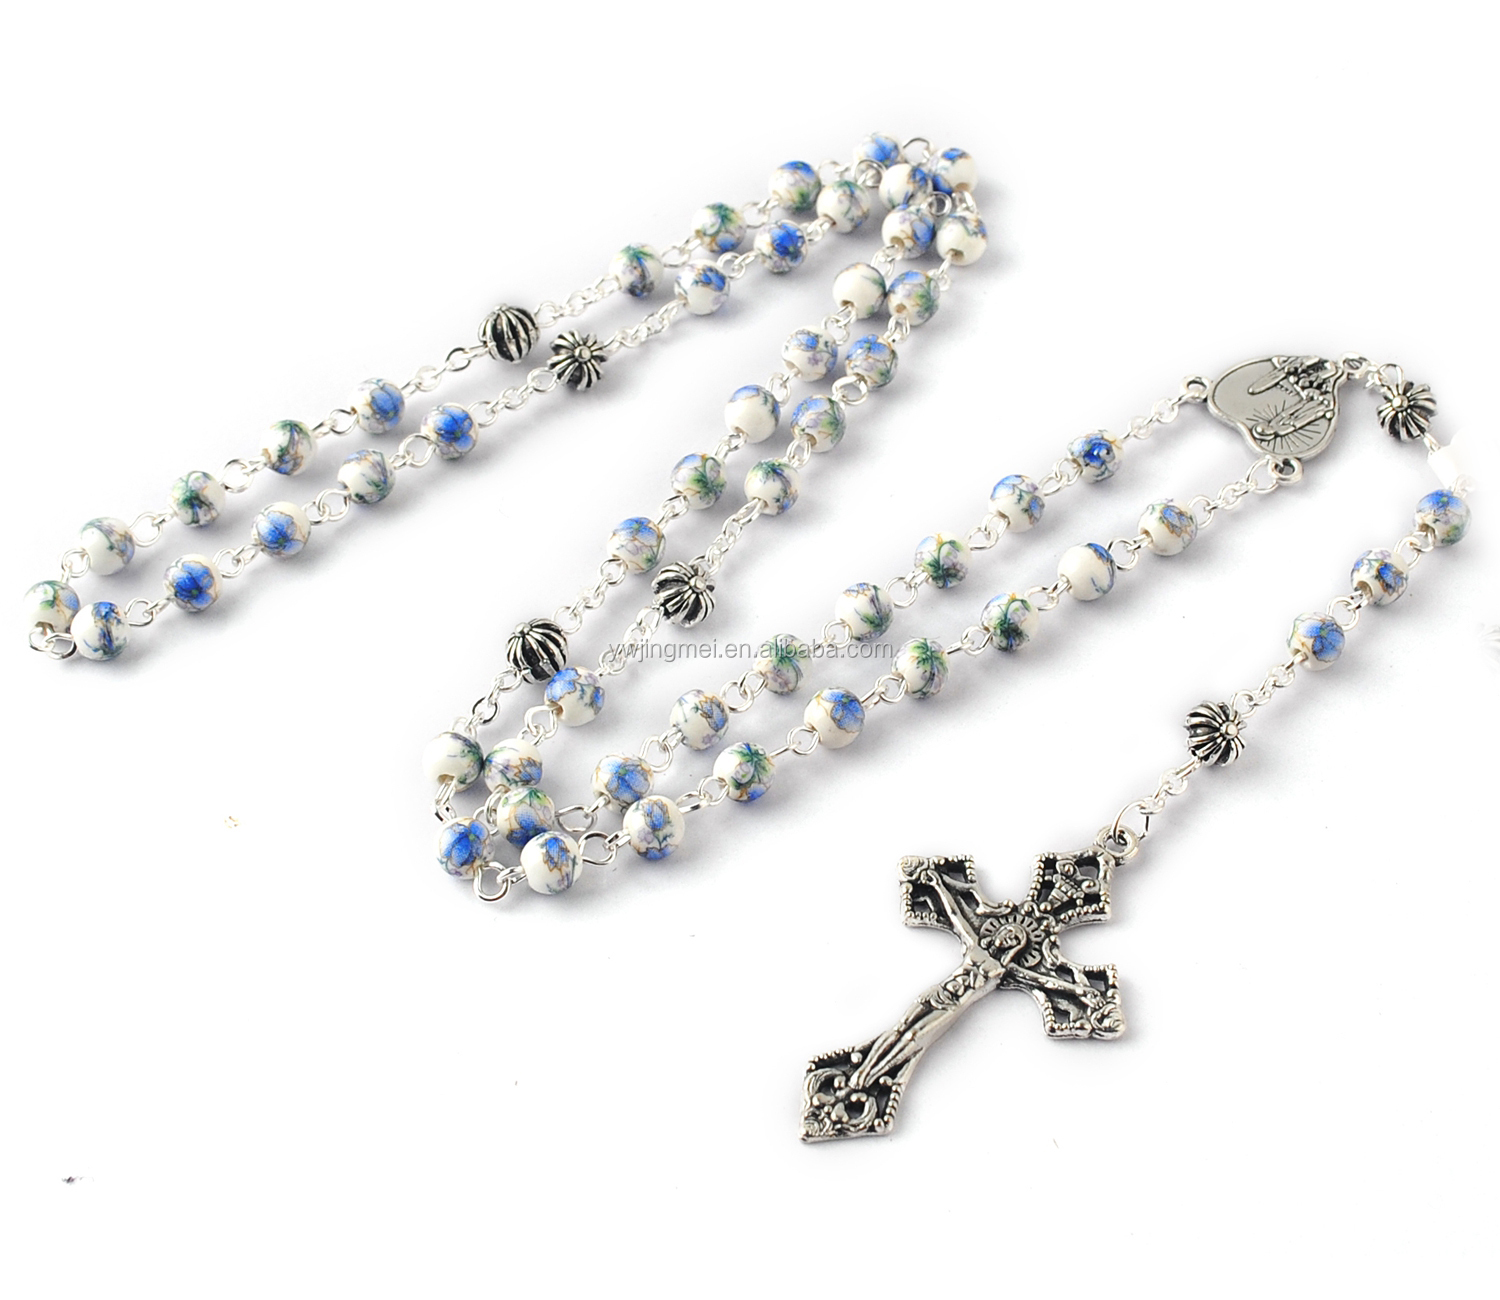 6mm Light Blue Ceramic Beads with Flower Painting with Anti-Silver Cross Glory Beads Rosary Necklace for Boy First Rosary